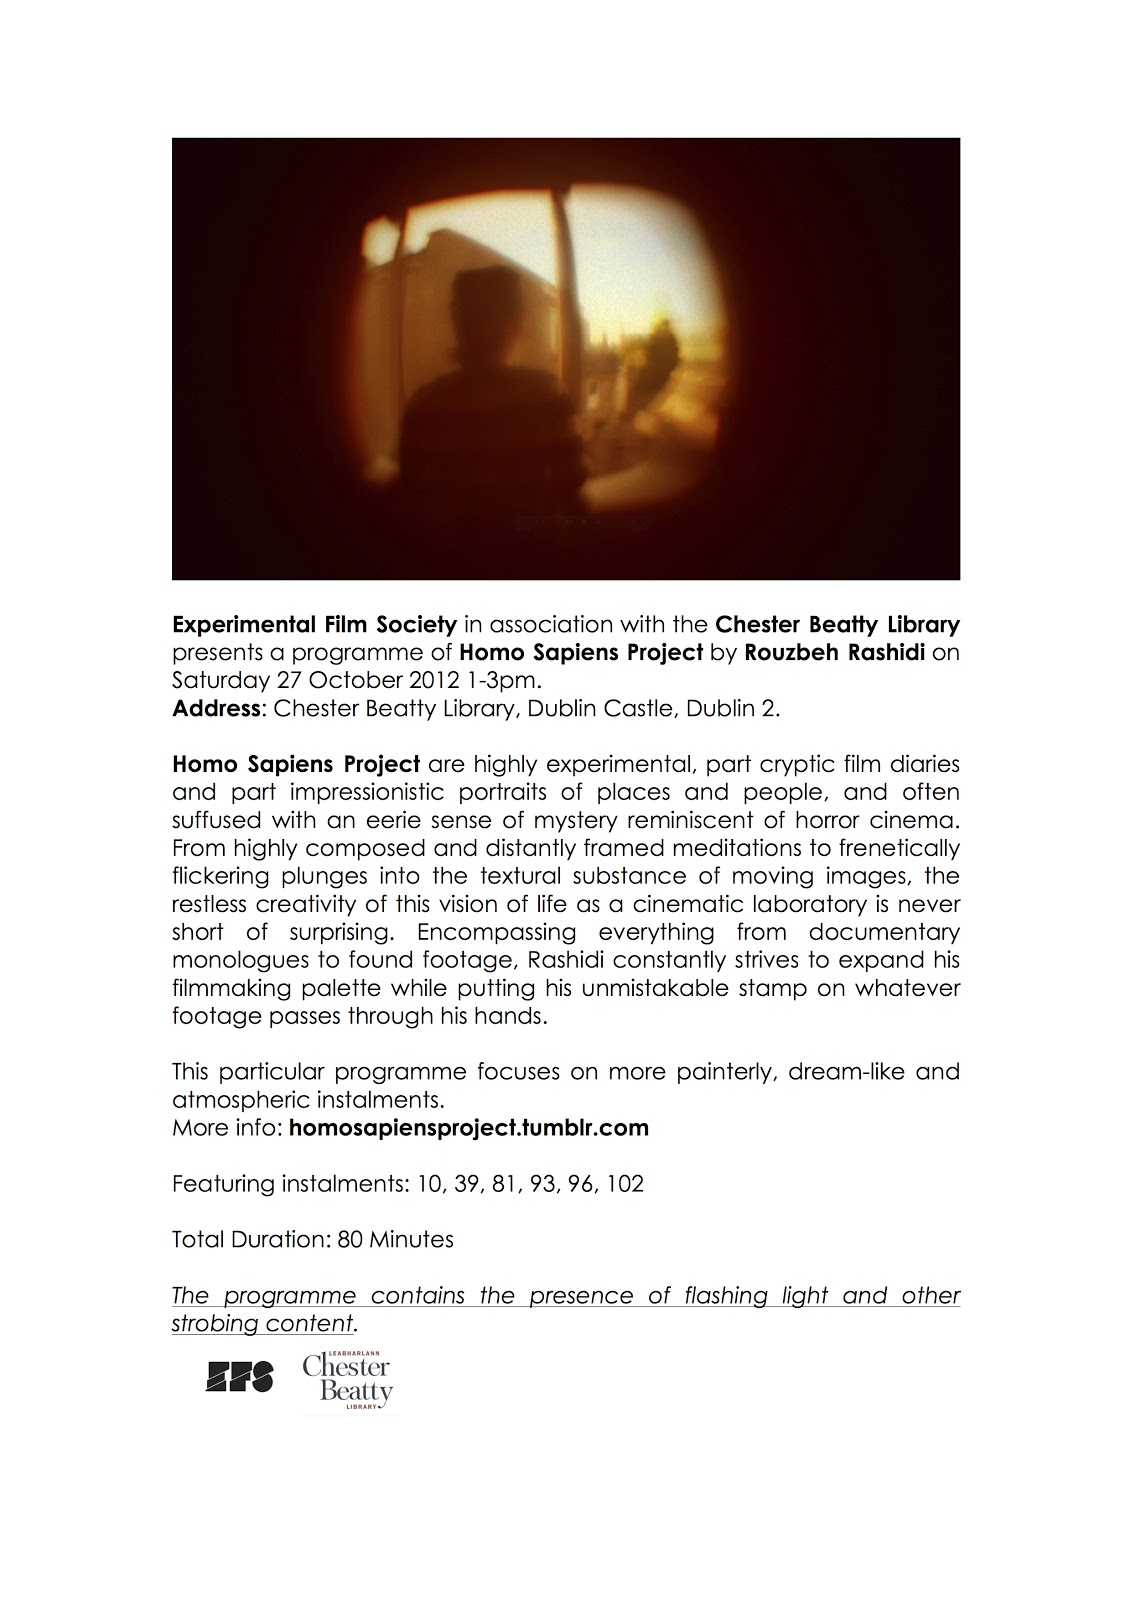 Homo Sapiens Project In Chester Beatty Library Experimental Film